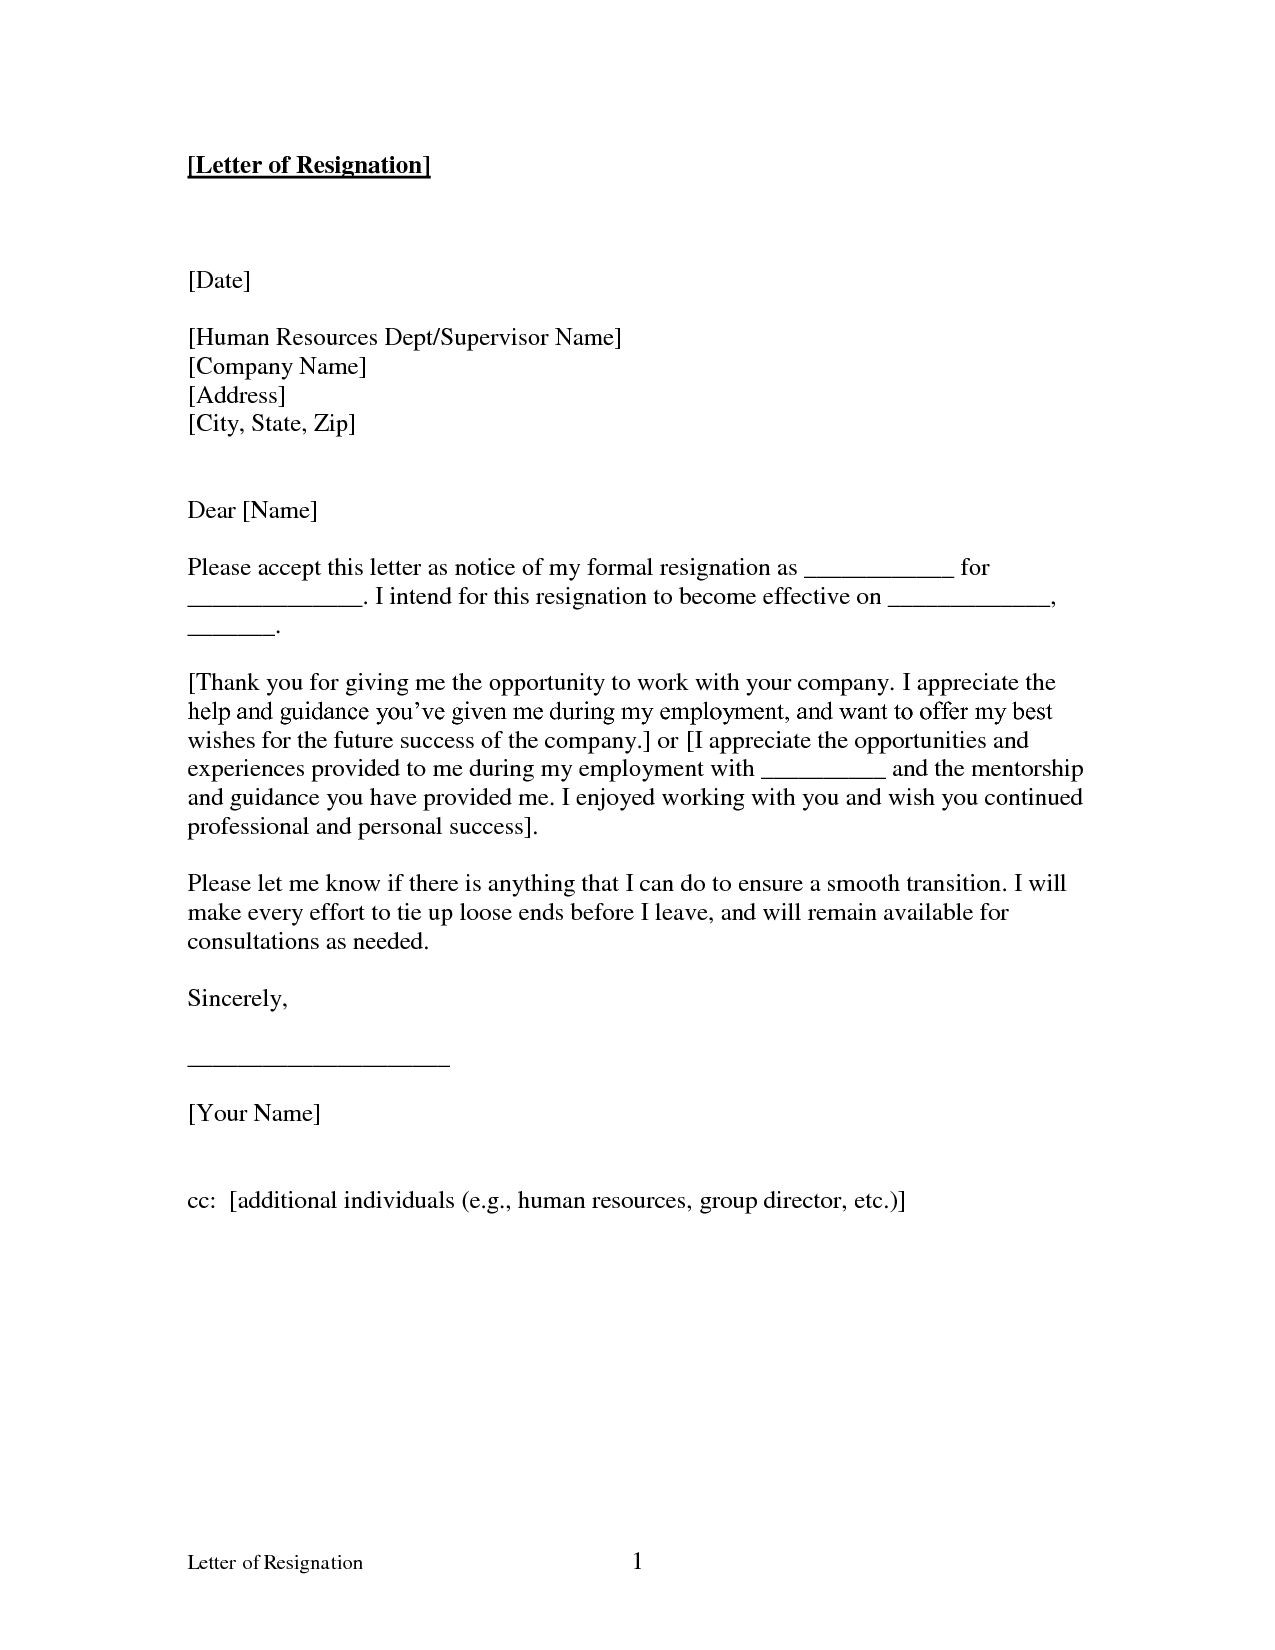 Printable Sample Letter Of Resignation Form  Formal Letter Of Resignation